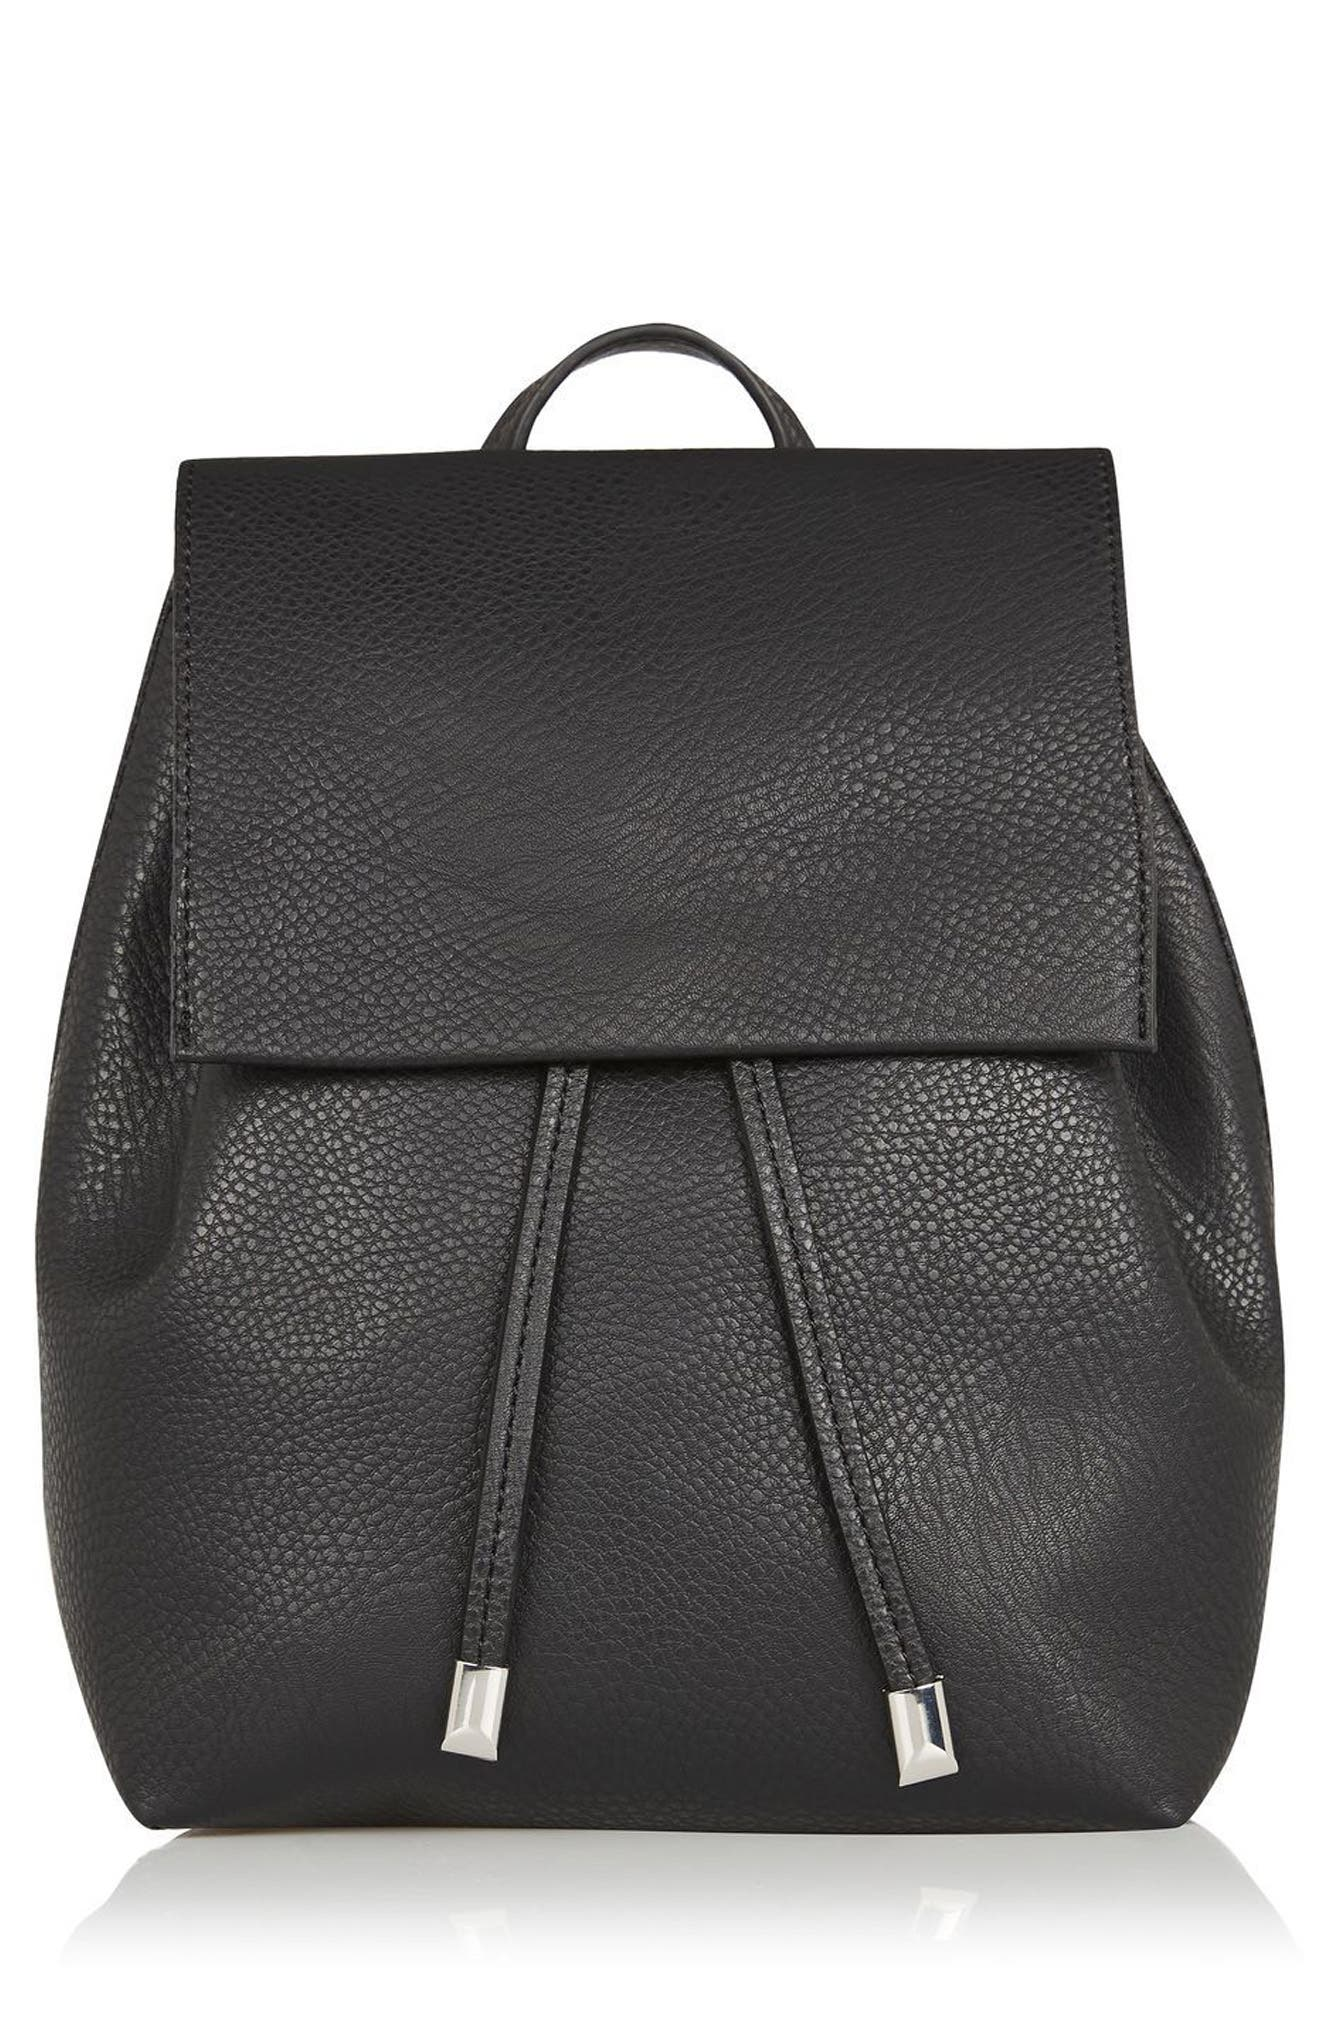 Alternate Image 1 Selected - Topshop Chain Strap Mini Faux Leather Backpack